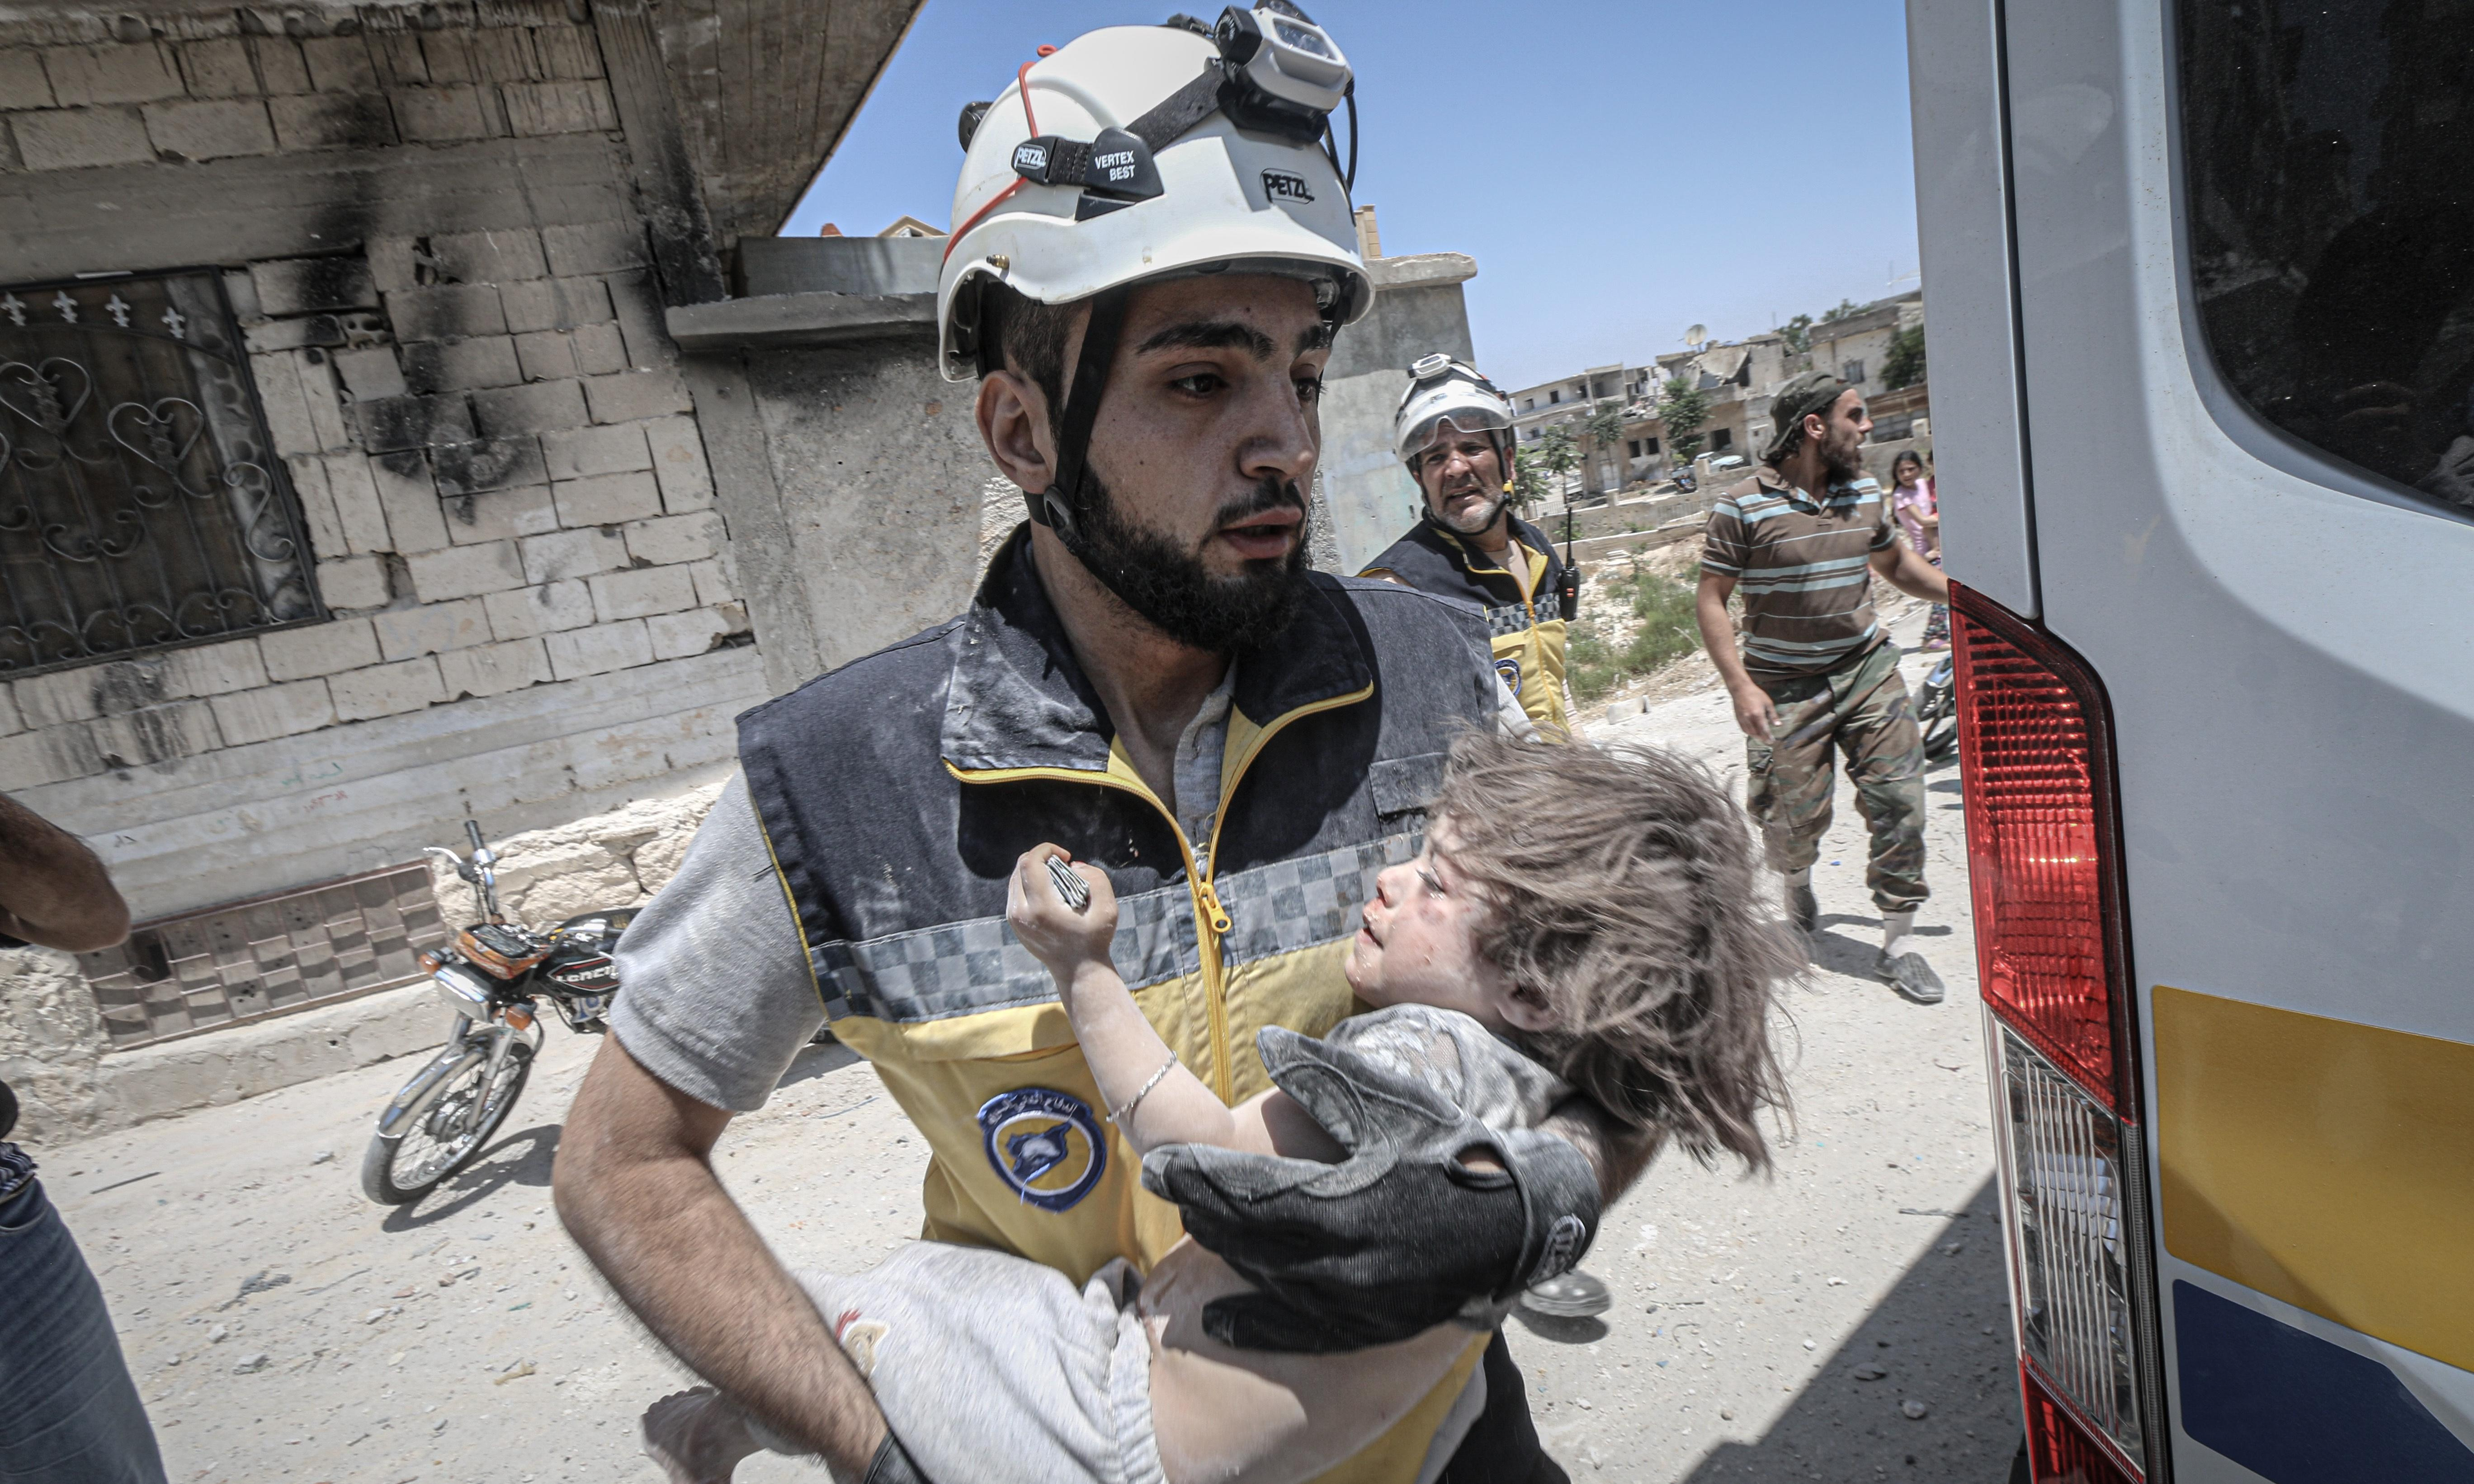 Don't call them Syria's child casualties. This is the slaughter of the innocents